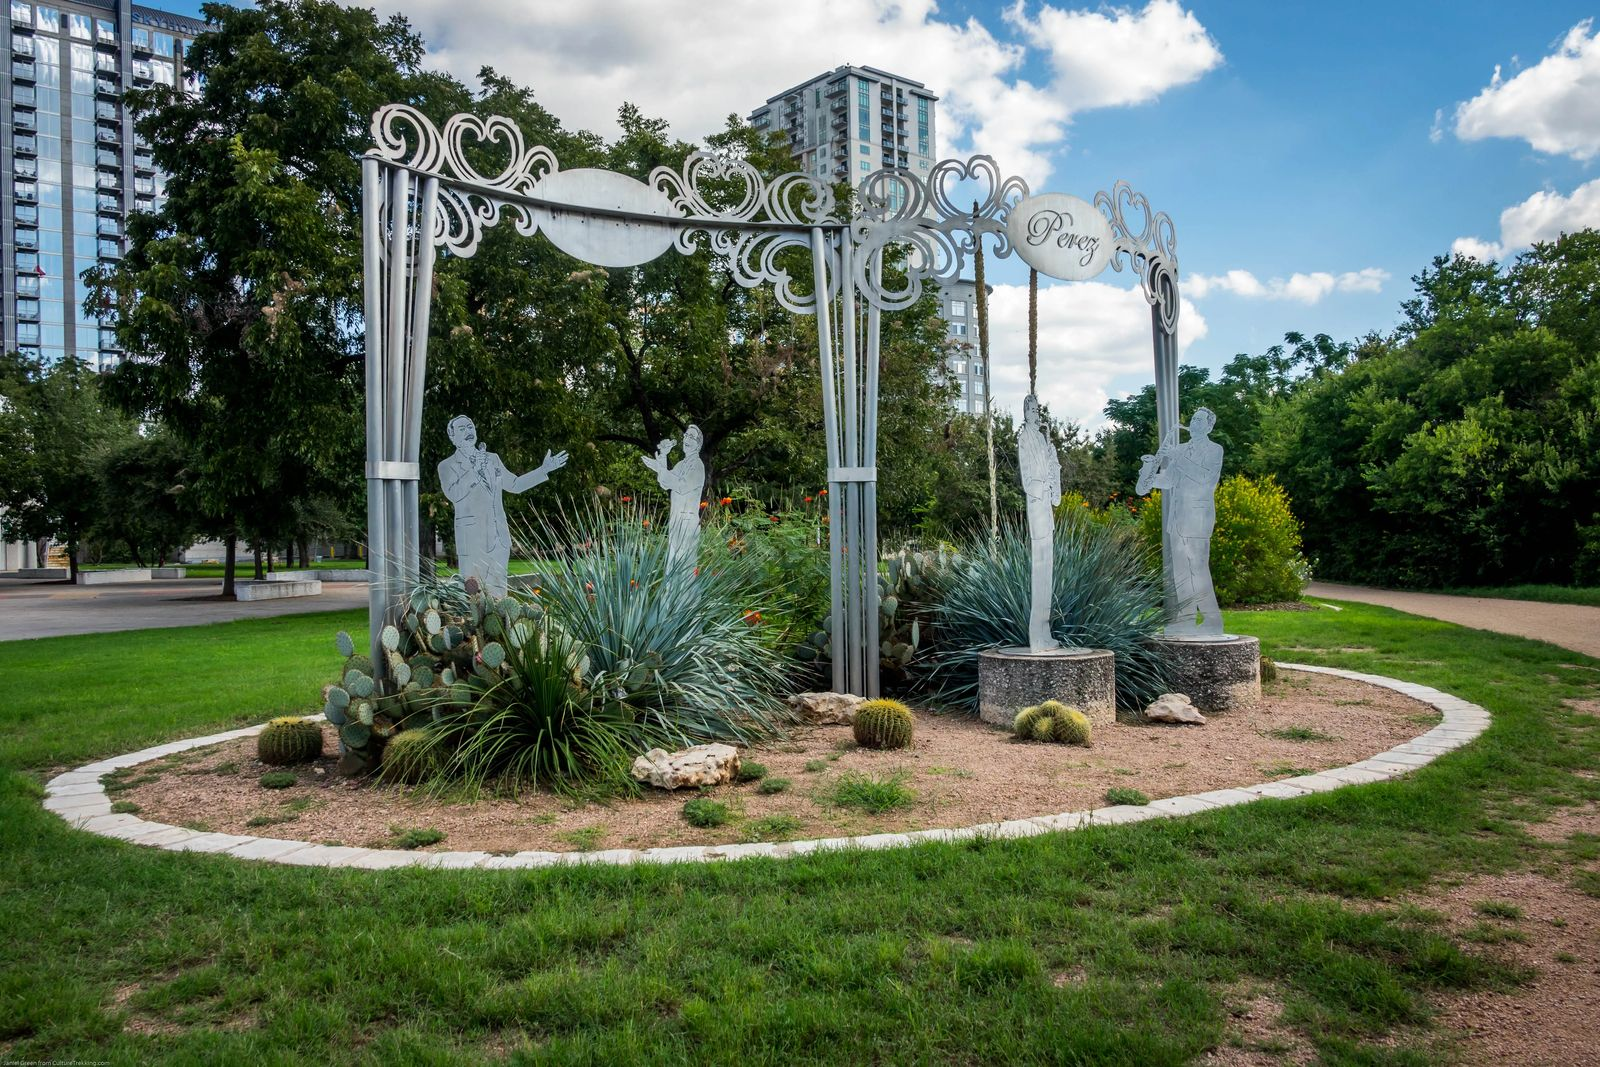 Austin - Mexican American Heritage Center- Unique things to do in Austin Texas - Culture Trekking - #AustinTexas #uniquethingstodoinaustin #Keepaustinweird